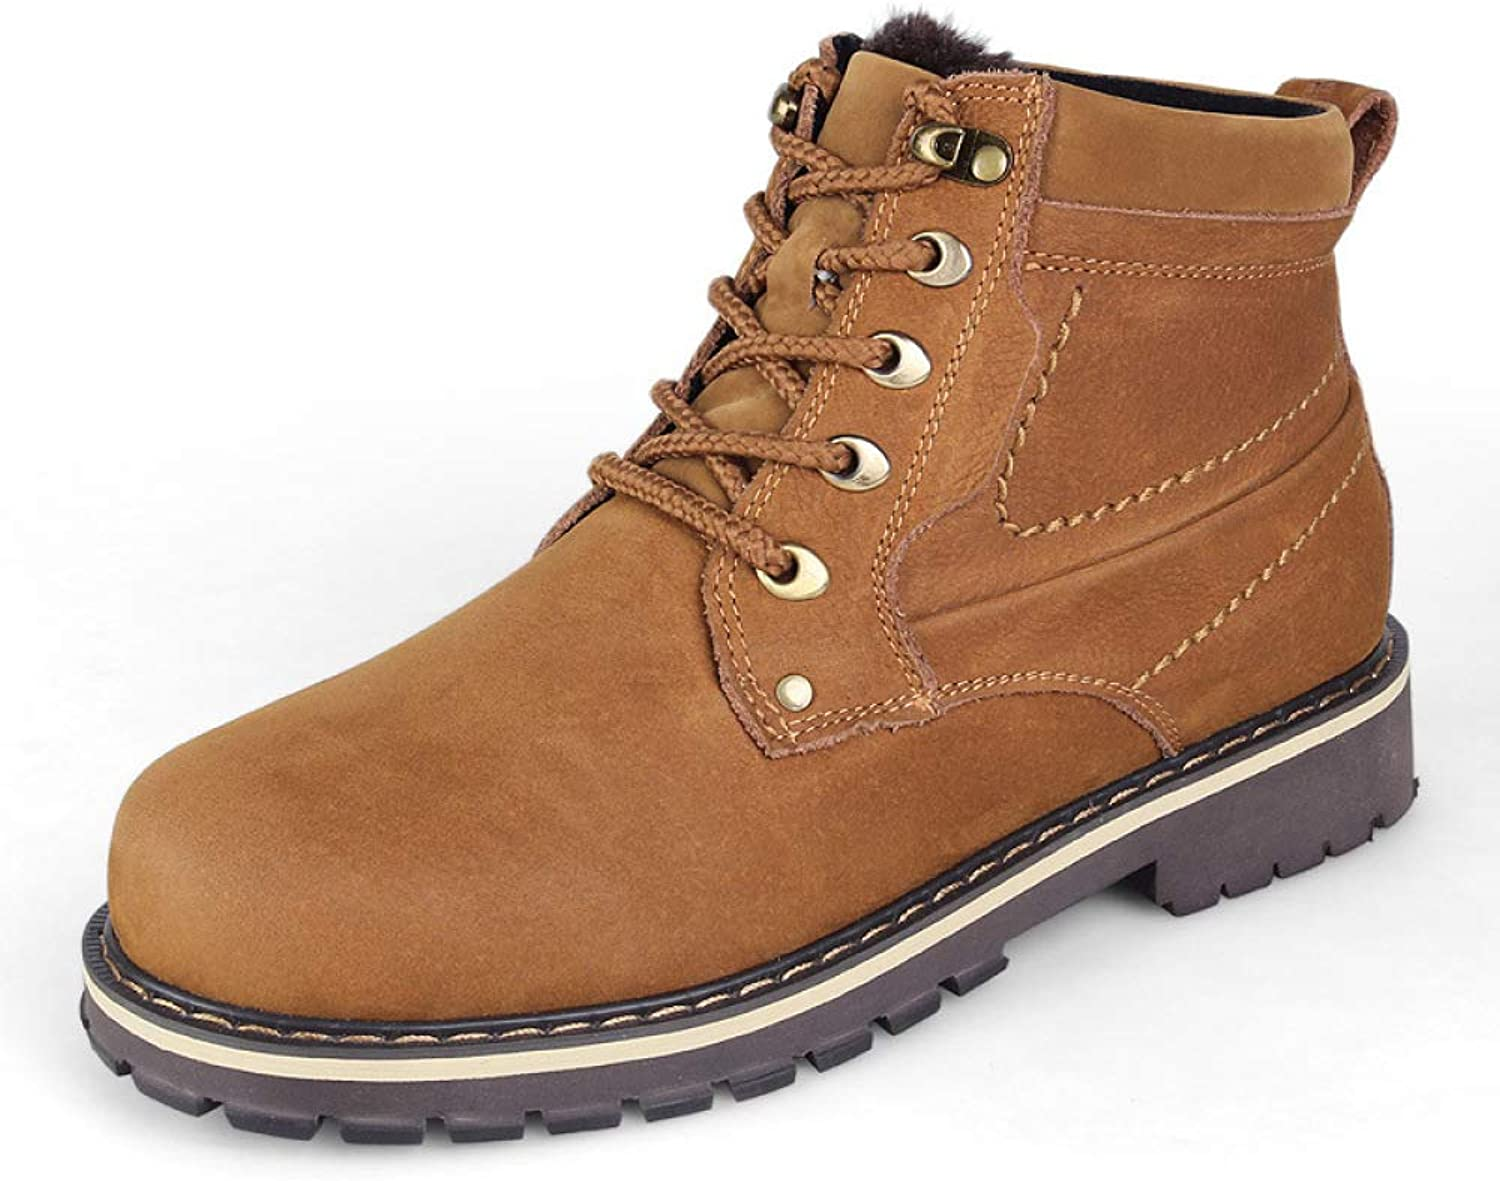 ef36aa40942f3 Leather Martin and Velvet Snow Boots Men's Winter Warm and ...